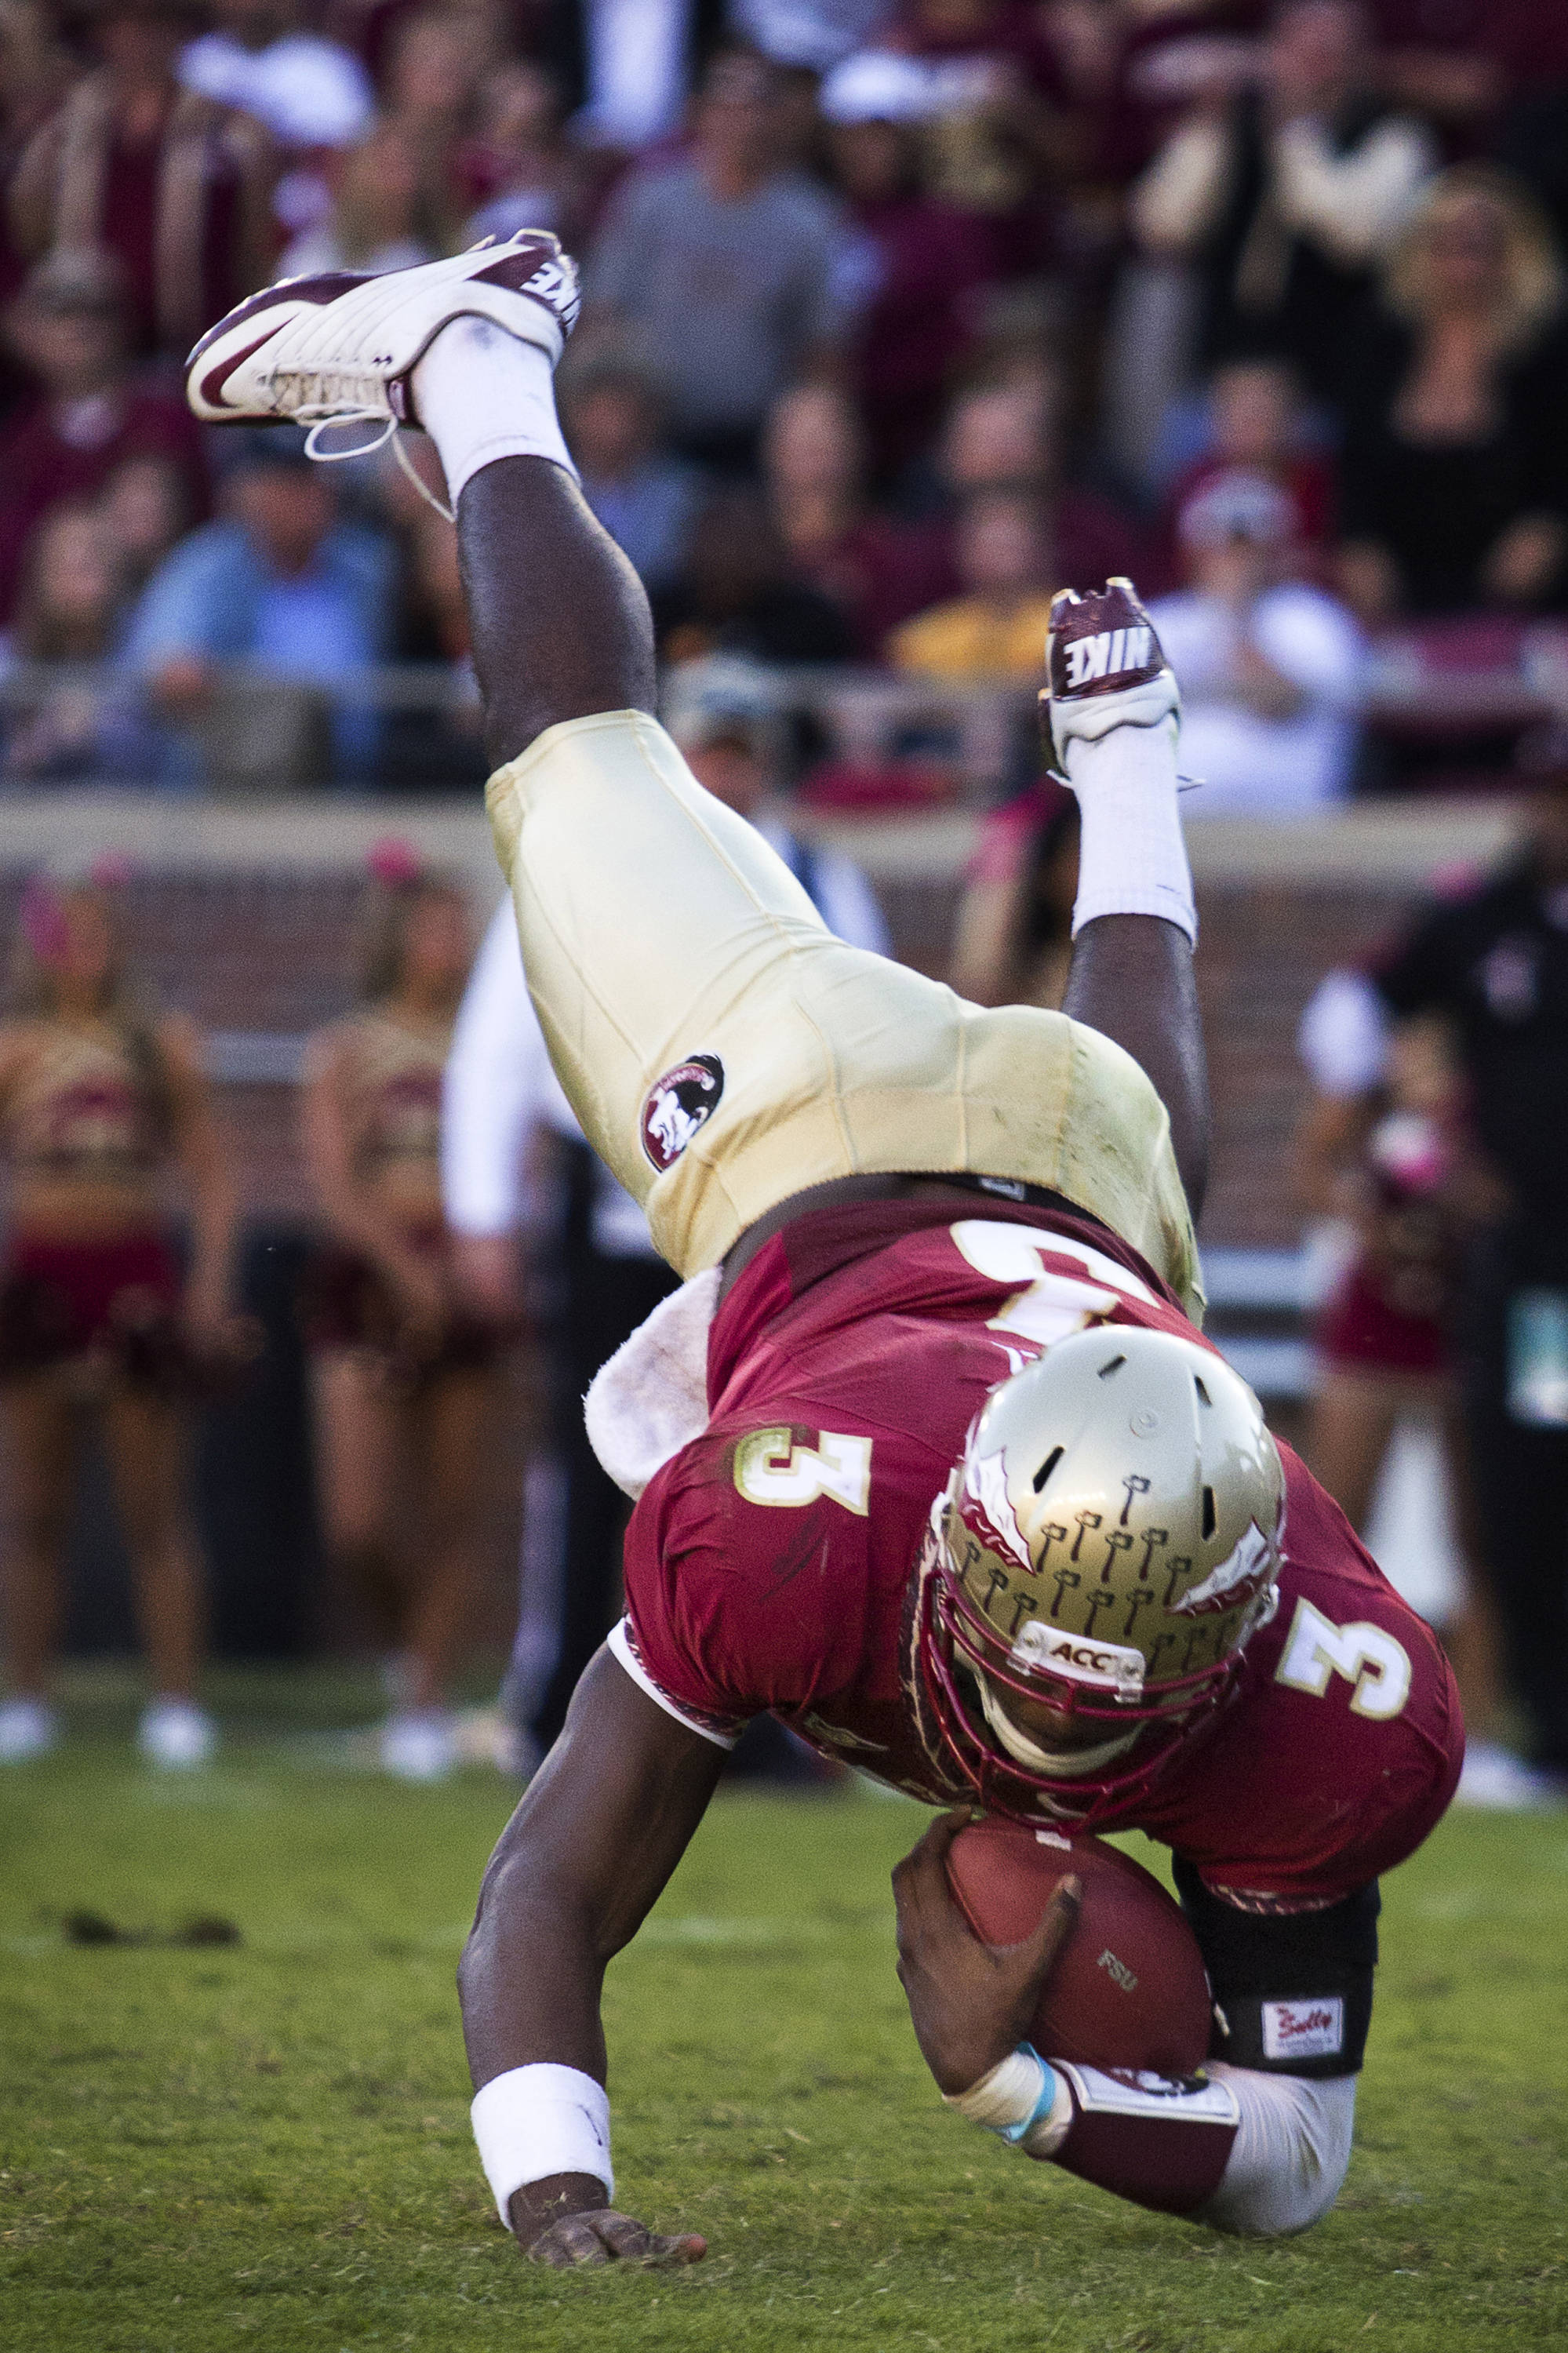 EJ Manuel (3) slams in to the ground after taking a hit during the football game against Maryland in Tallahassee, Florida on October 22, 2011.